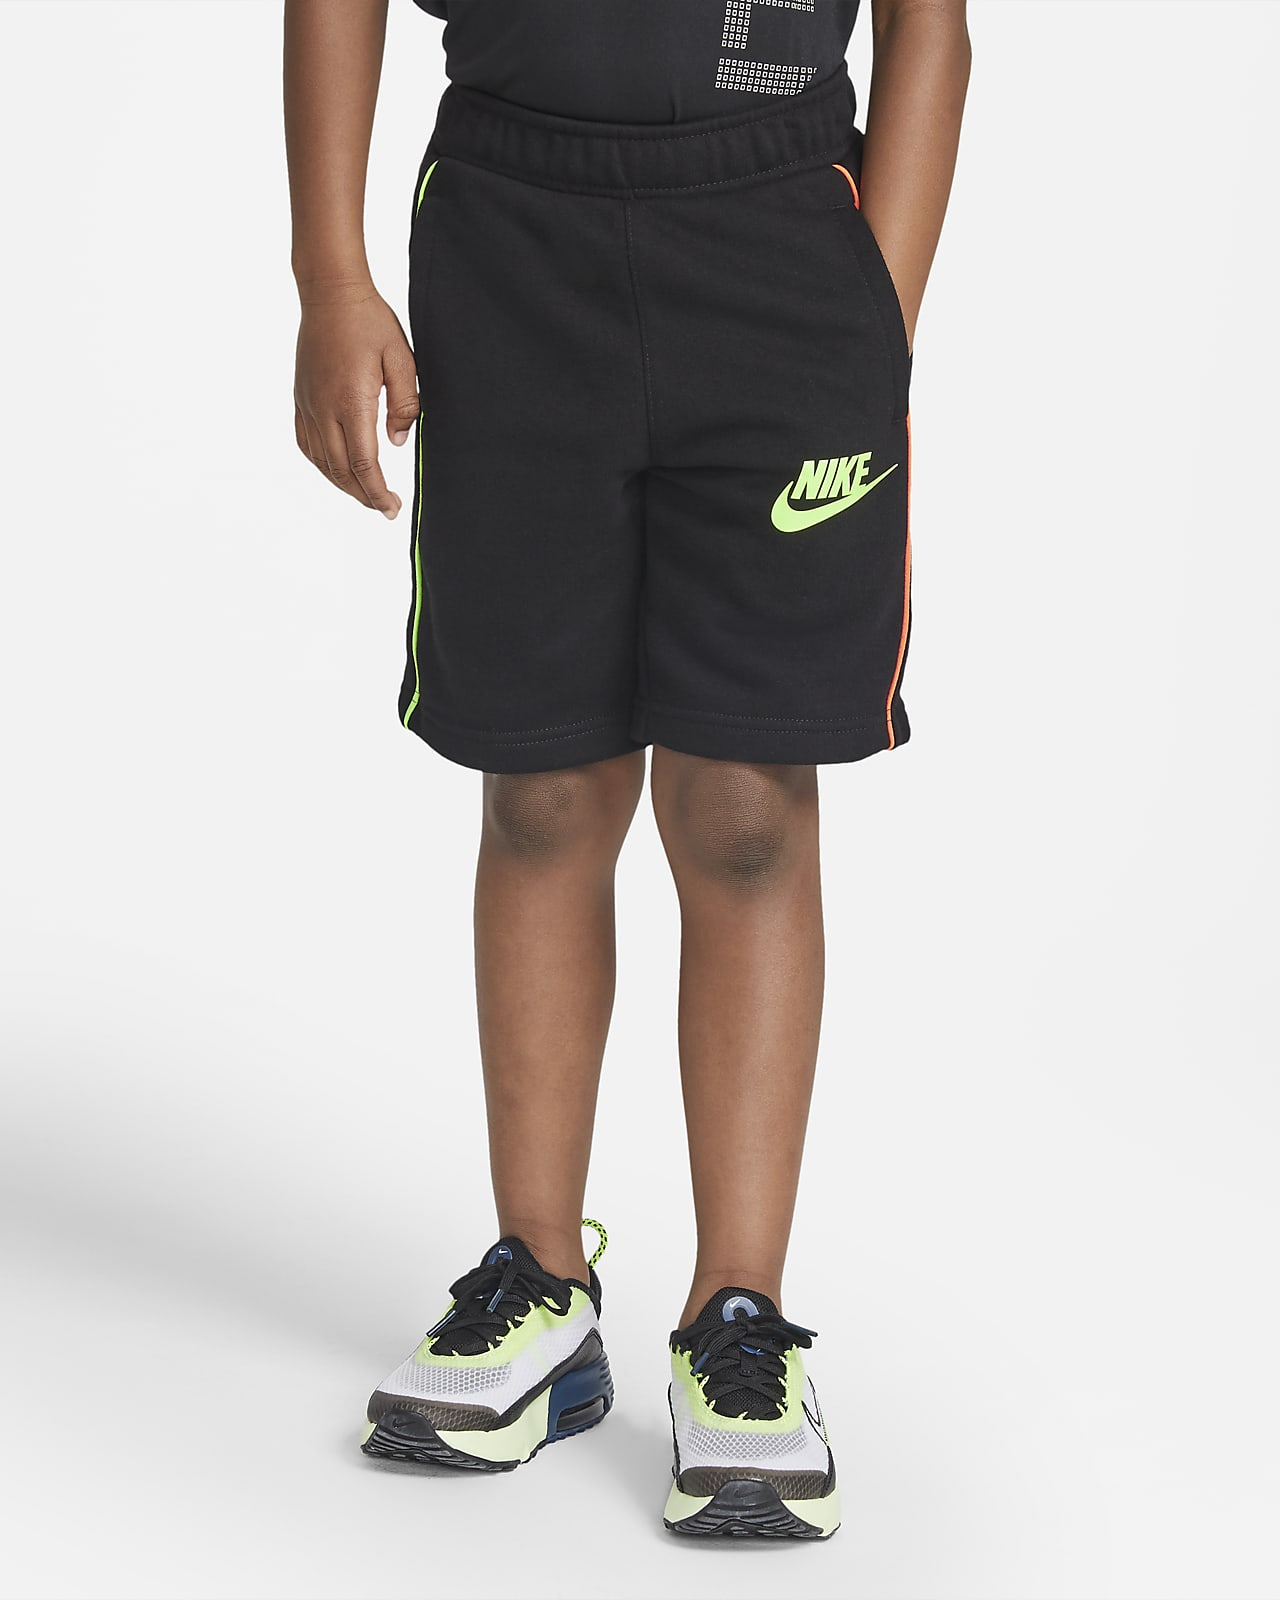 Nike Little Kids' French Terry Shorts